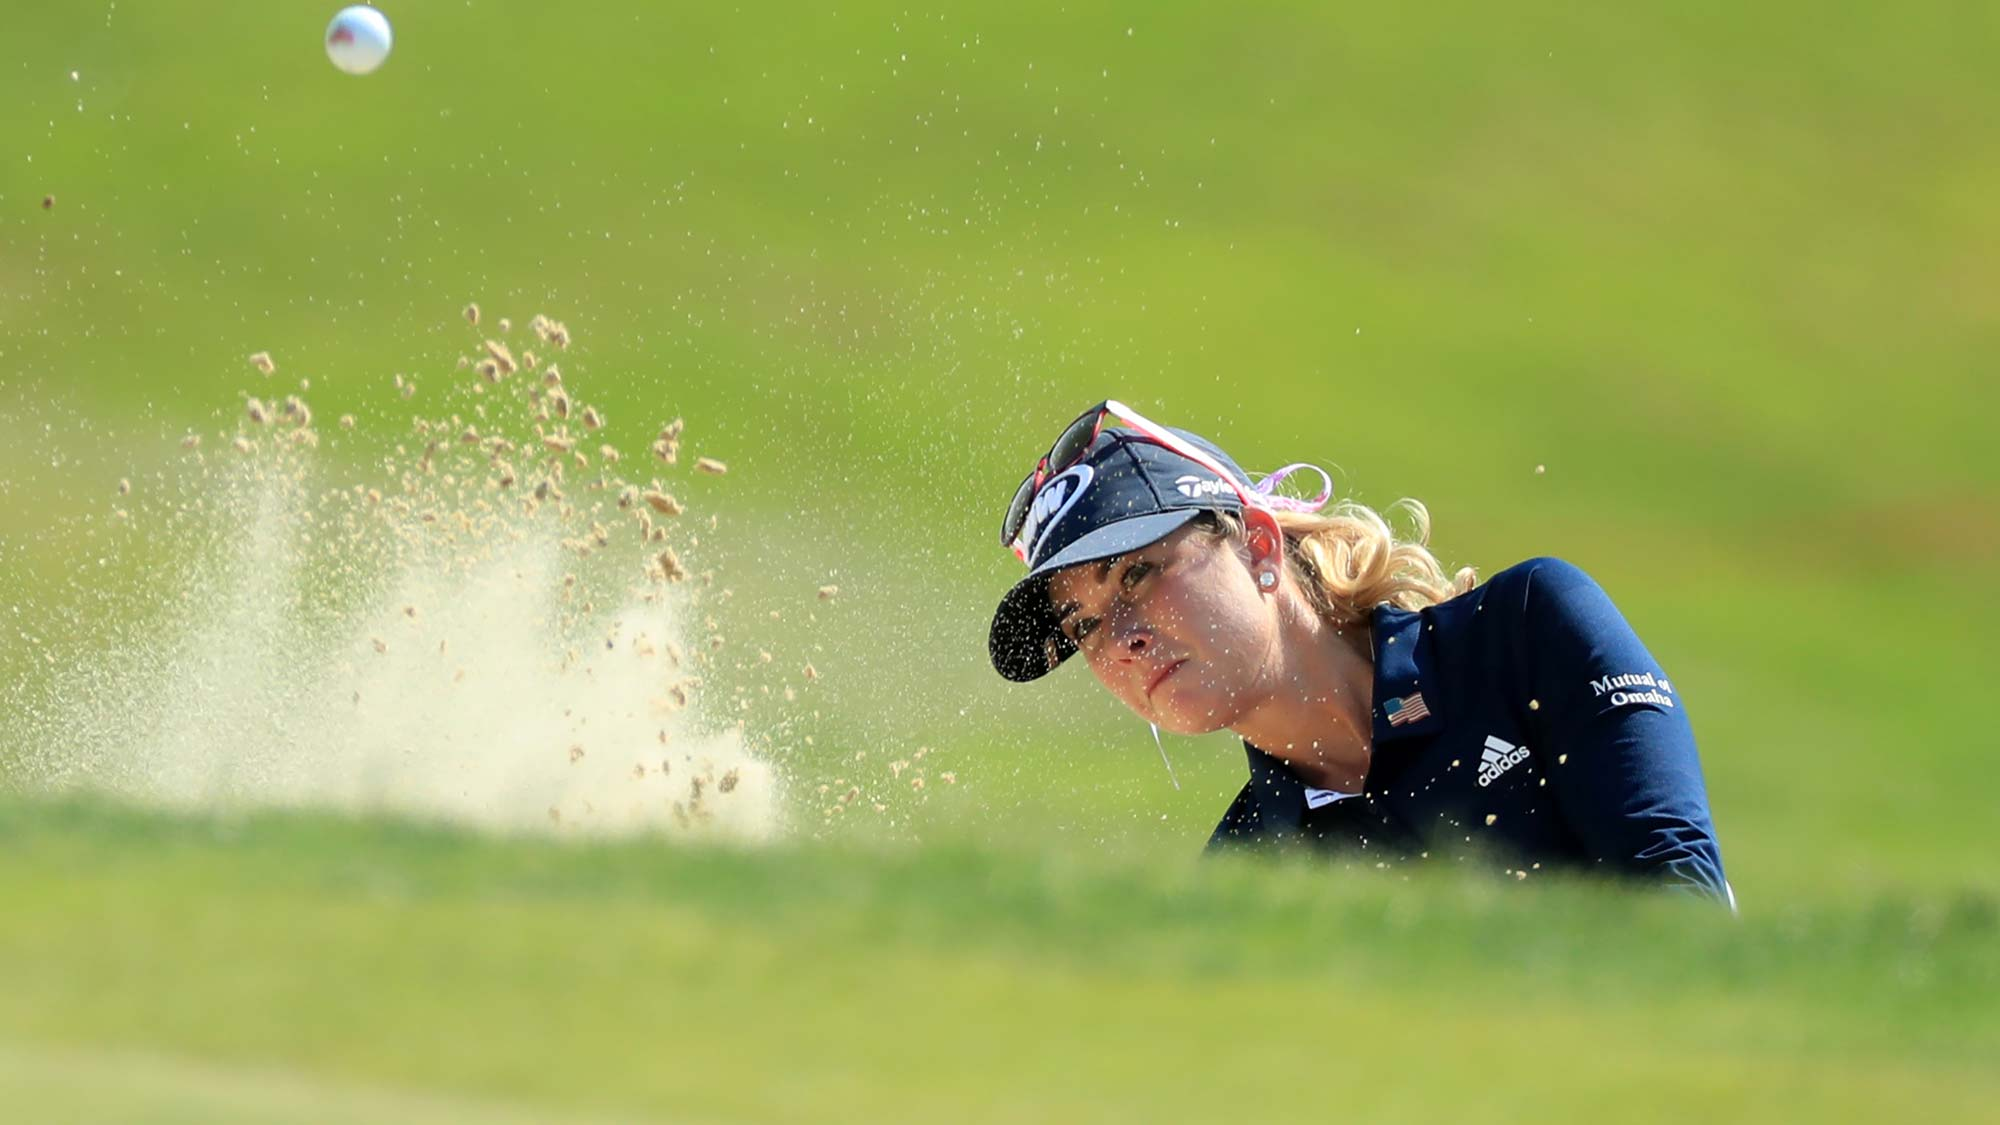 Paula Creamer hits out of a bunker on the 18th hole during the second round of the Pure Silk Championship